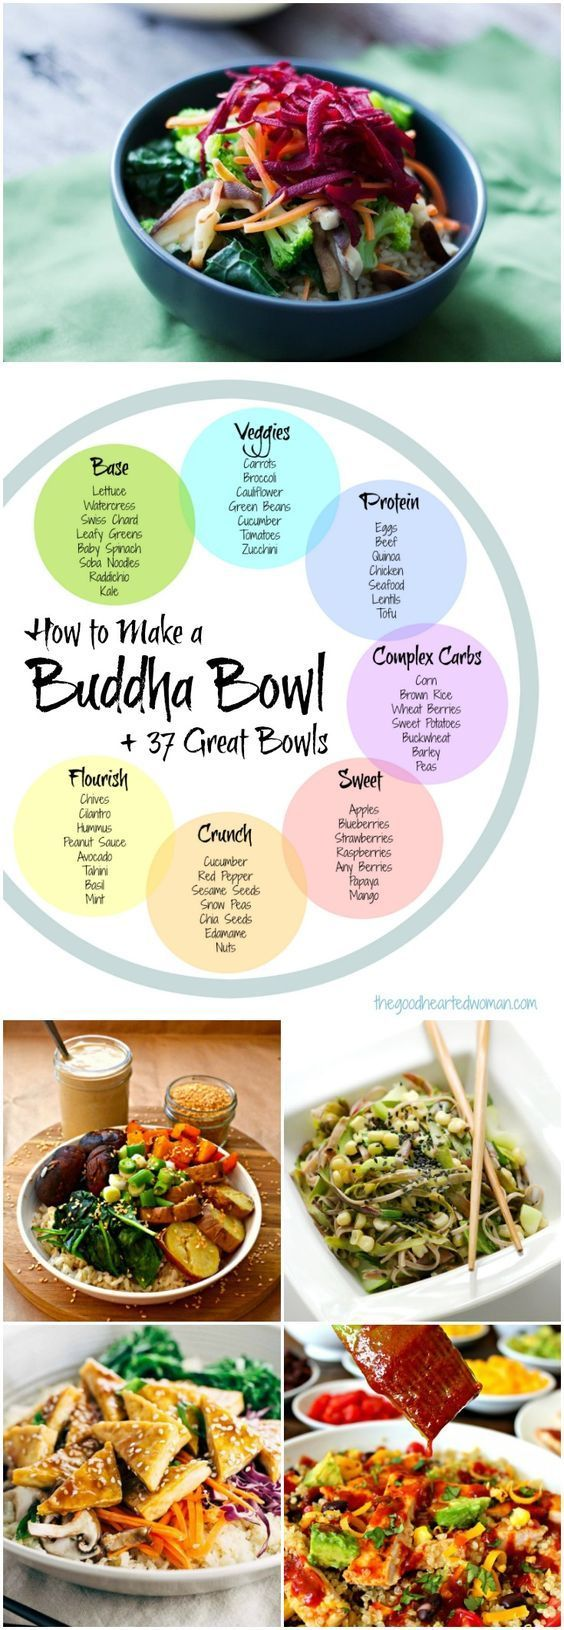 How to Make a Buddha Bowl {+37 Great Bowls}   The Good Hearted Woman